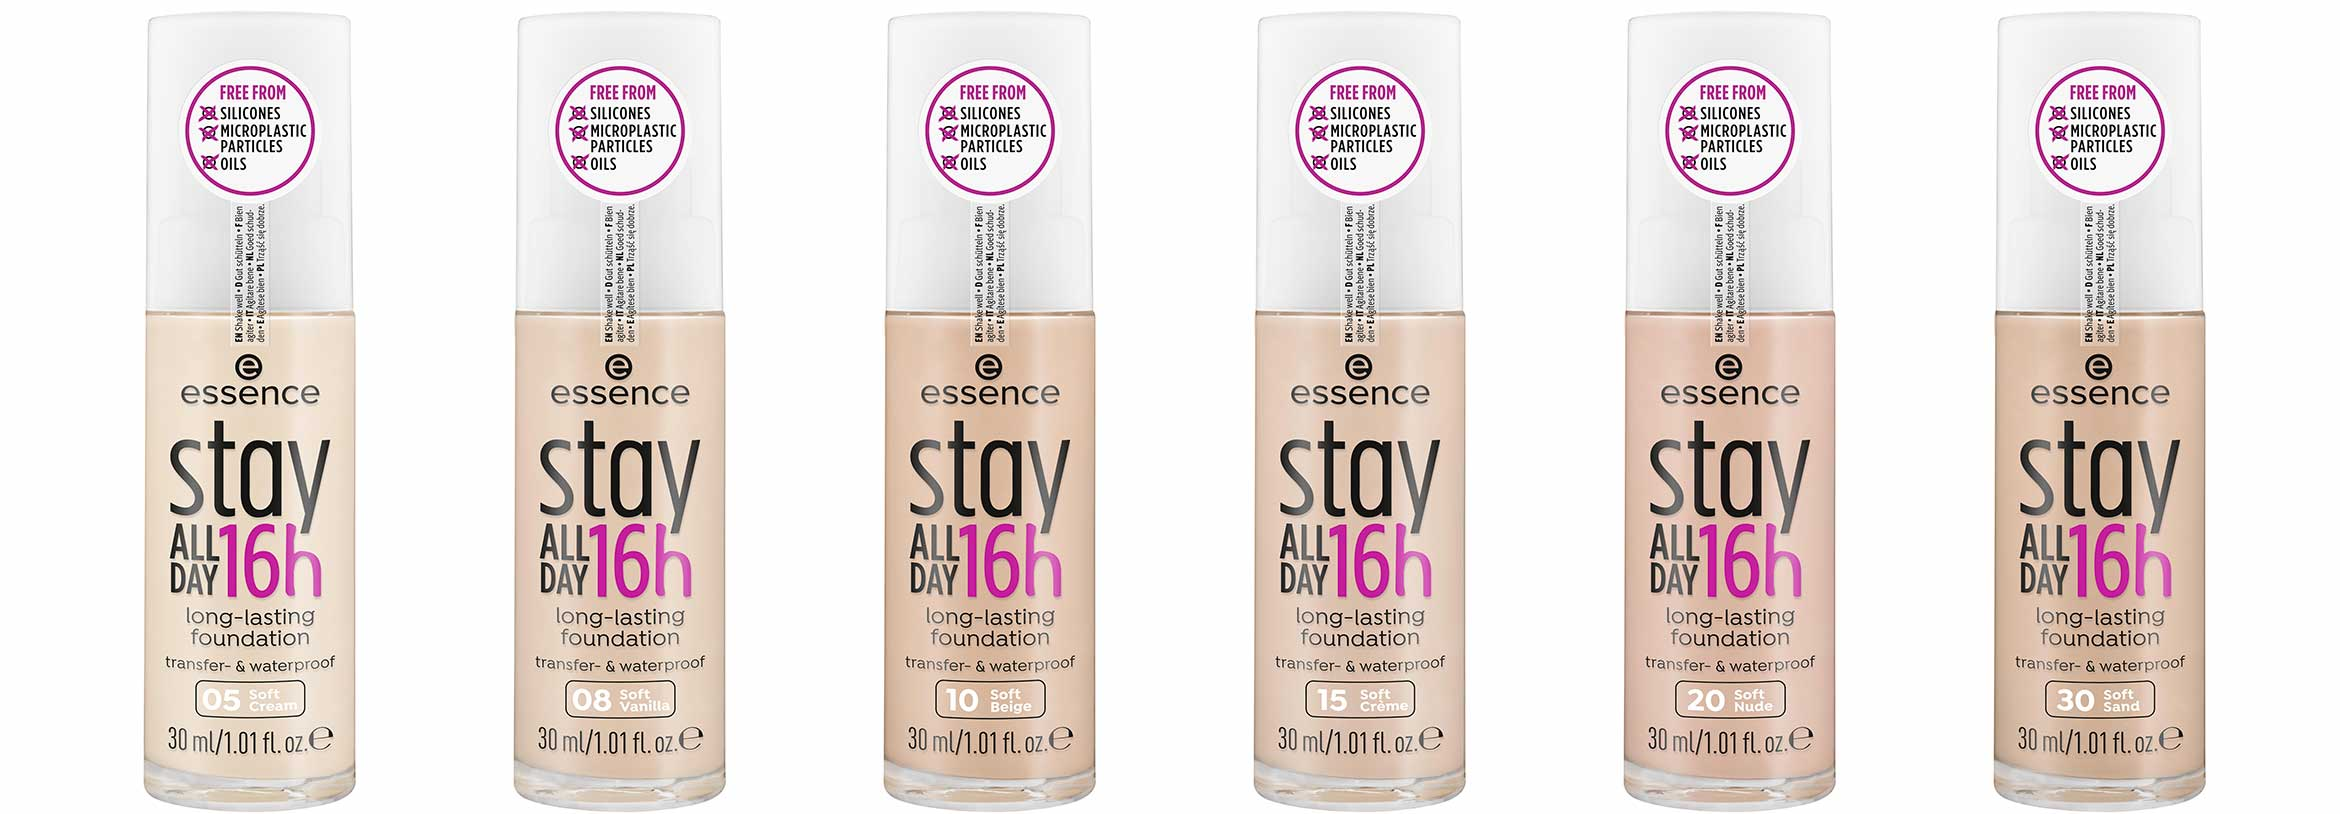 essence relaunch stay all day 16h foundation